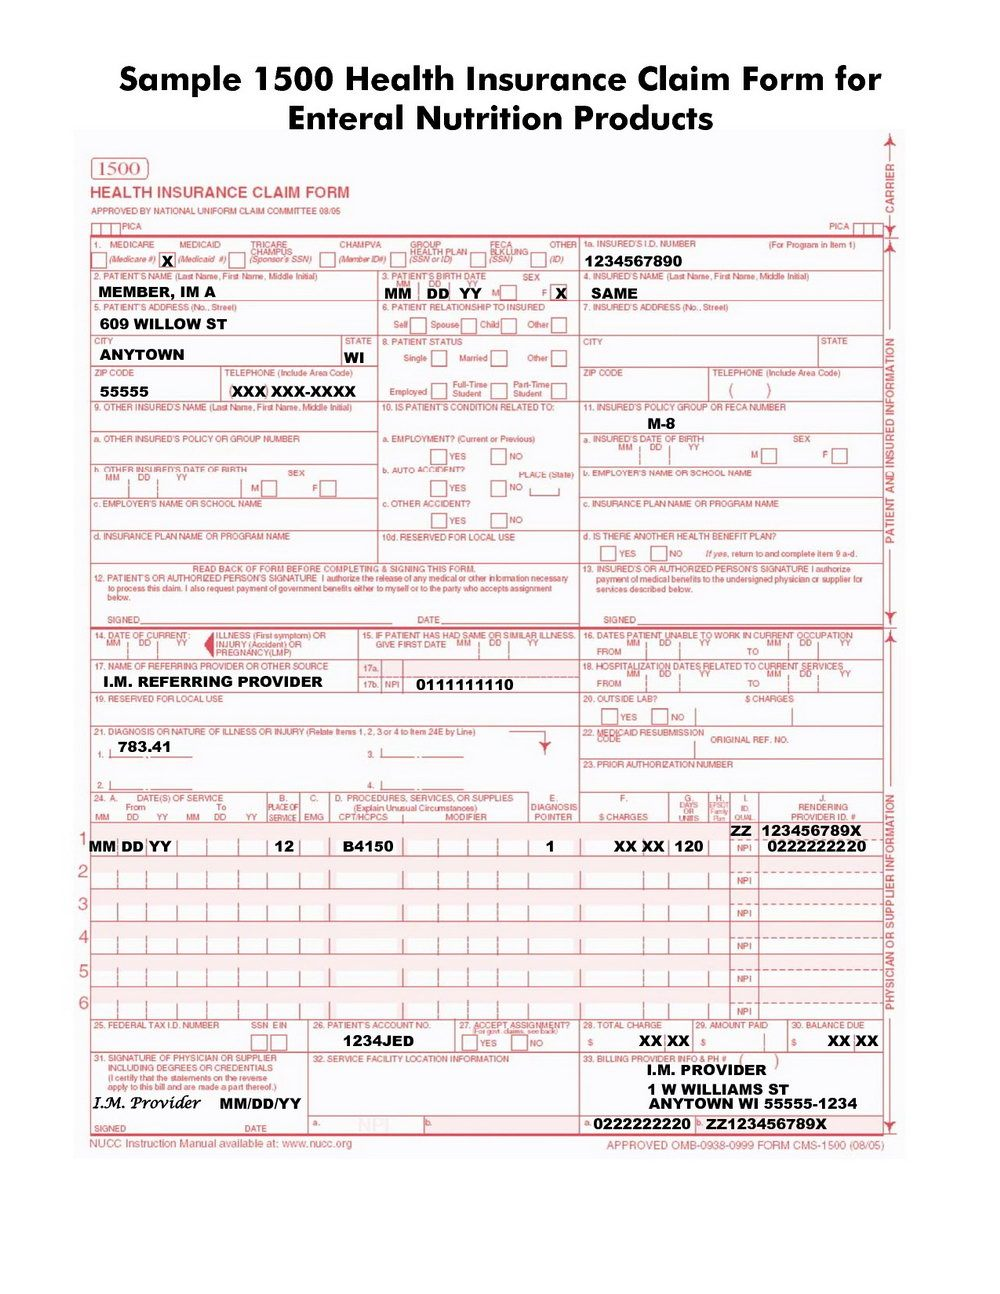 Cms 1500 Claim Form Filled Out